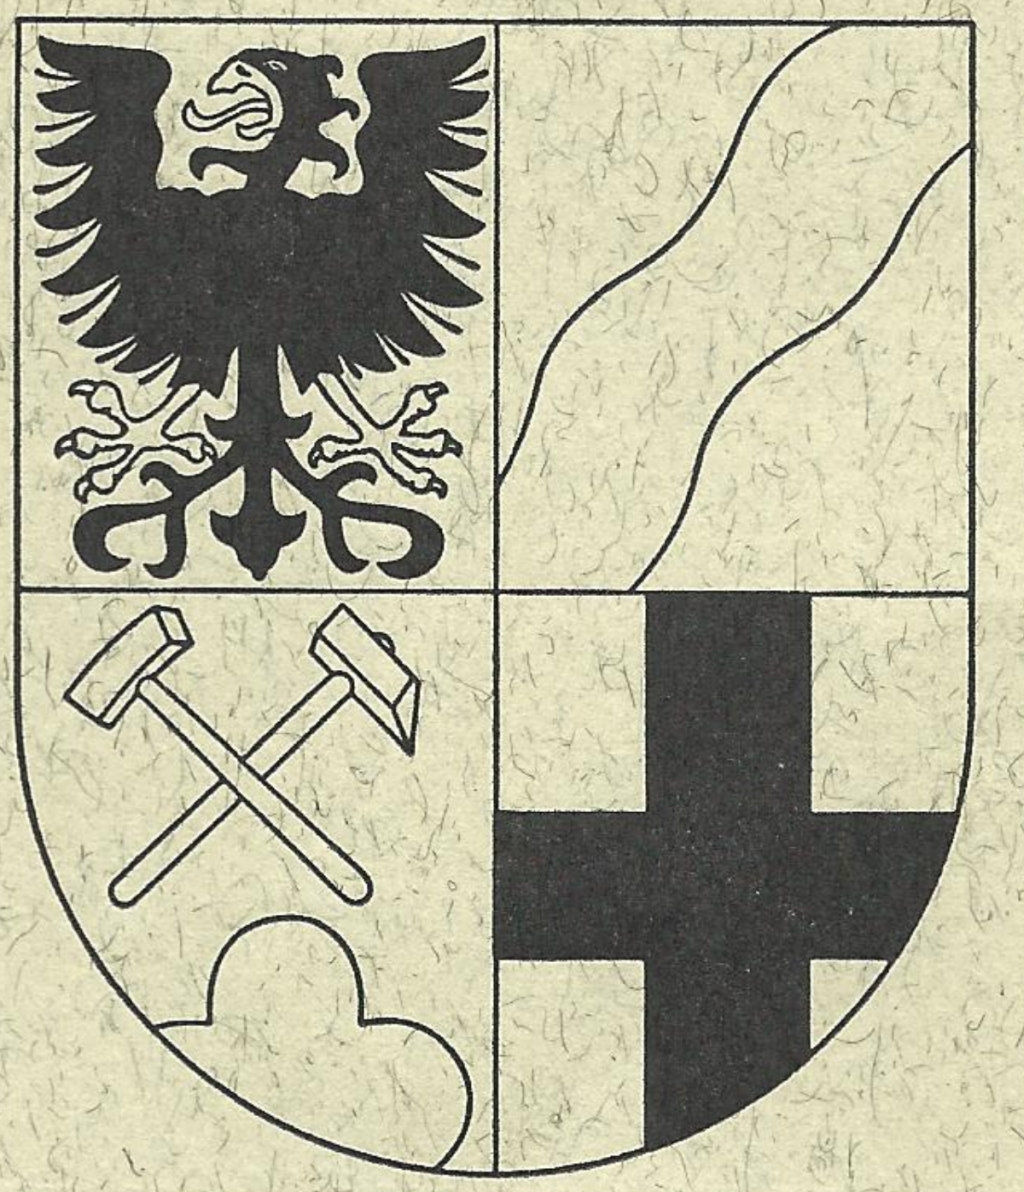 The Würselen City Coat of Arms